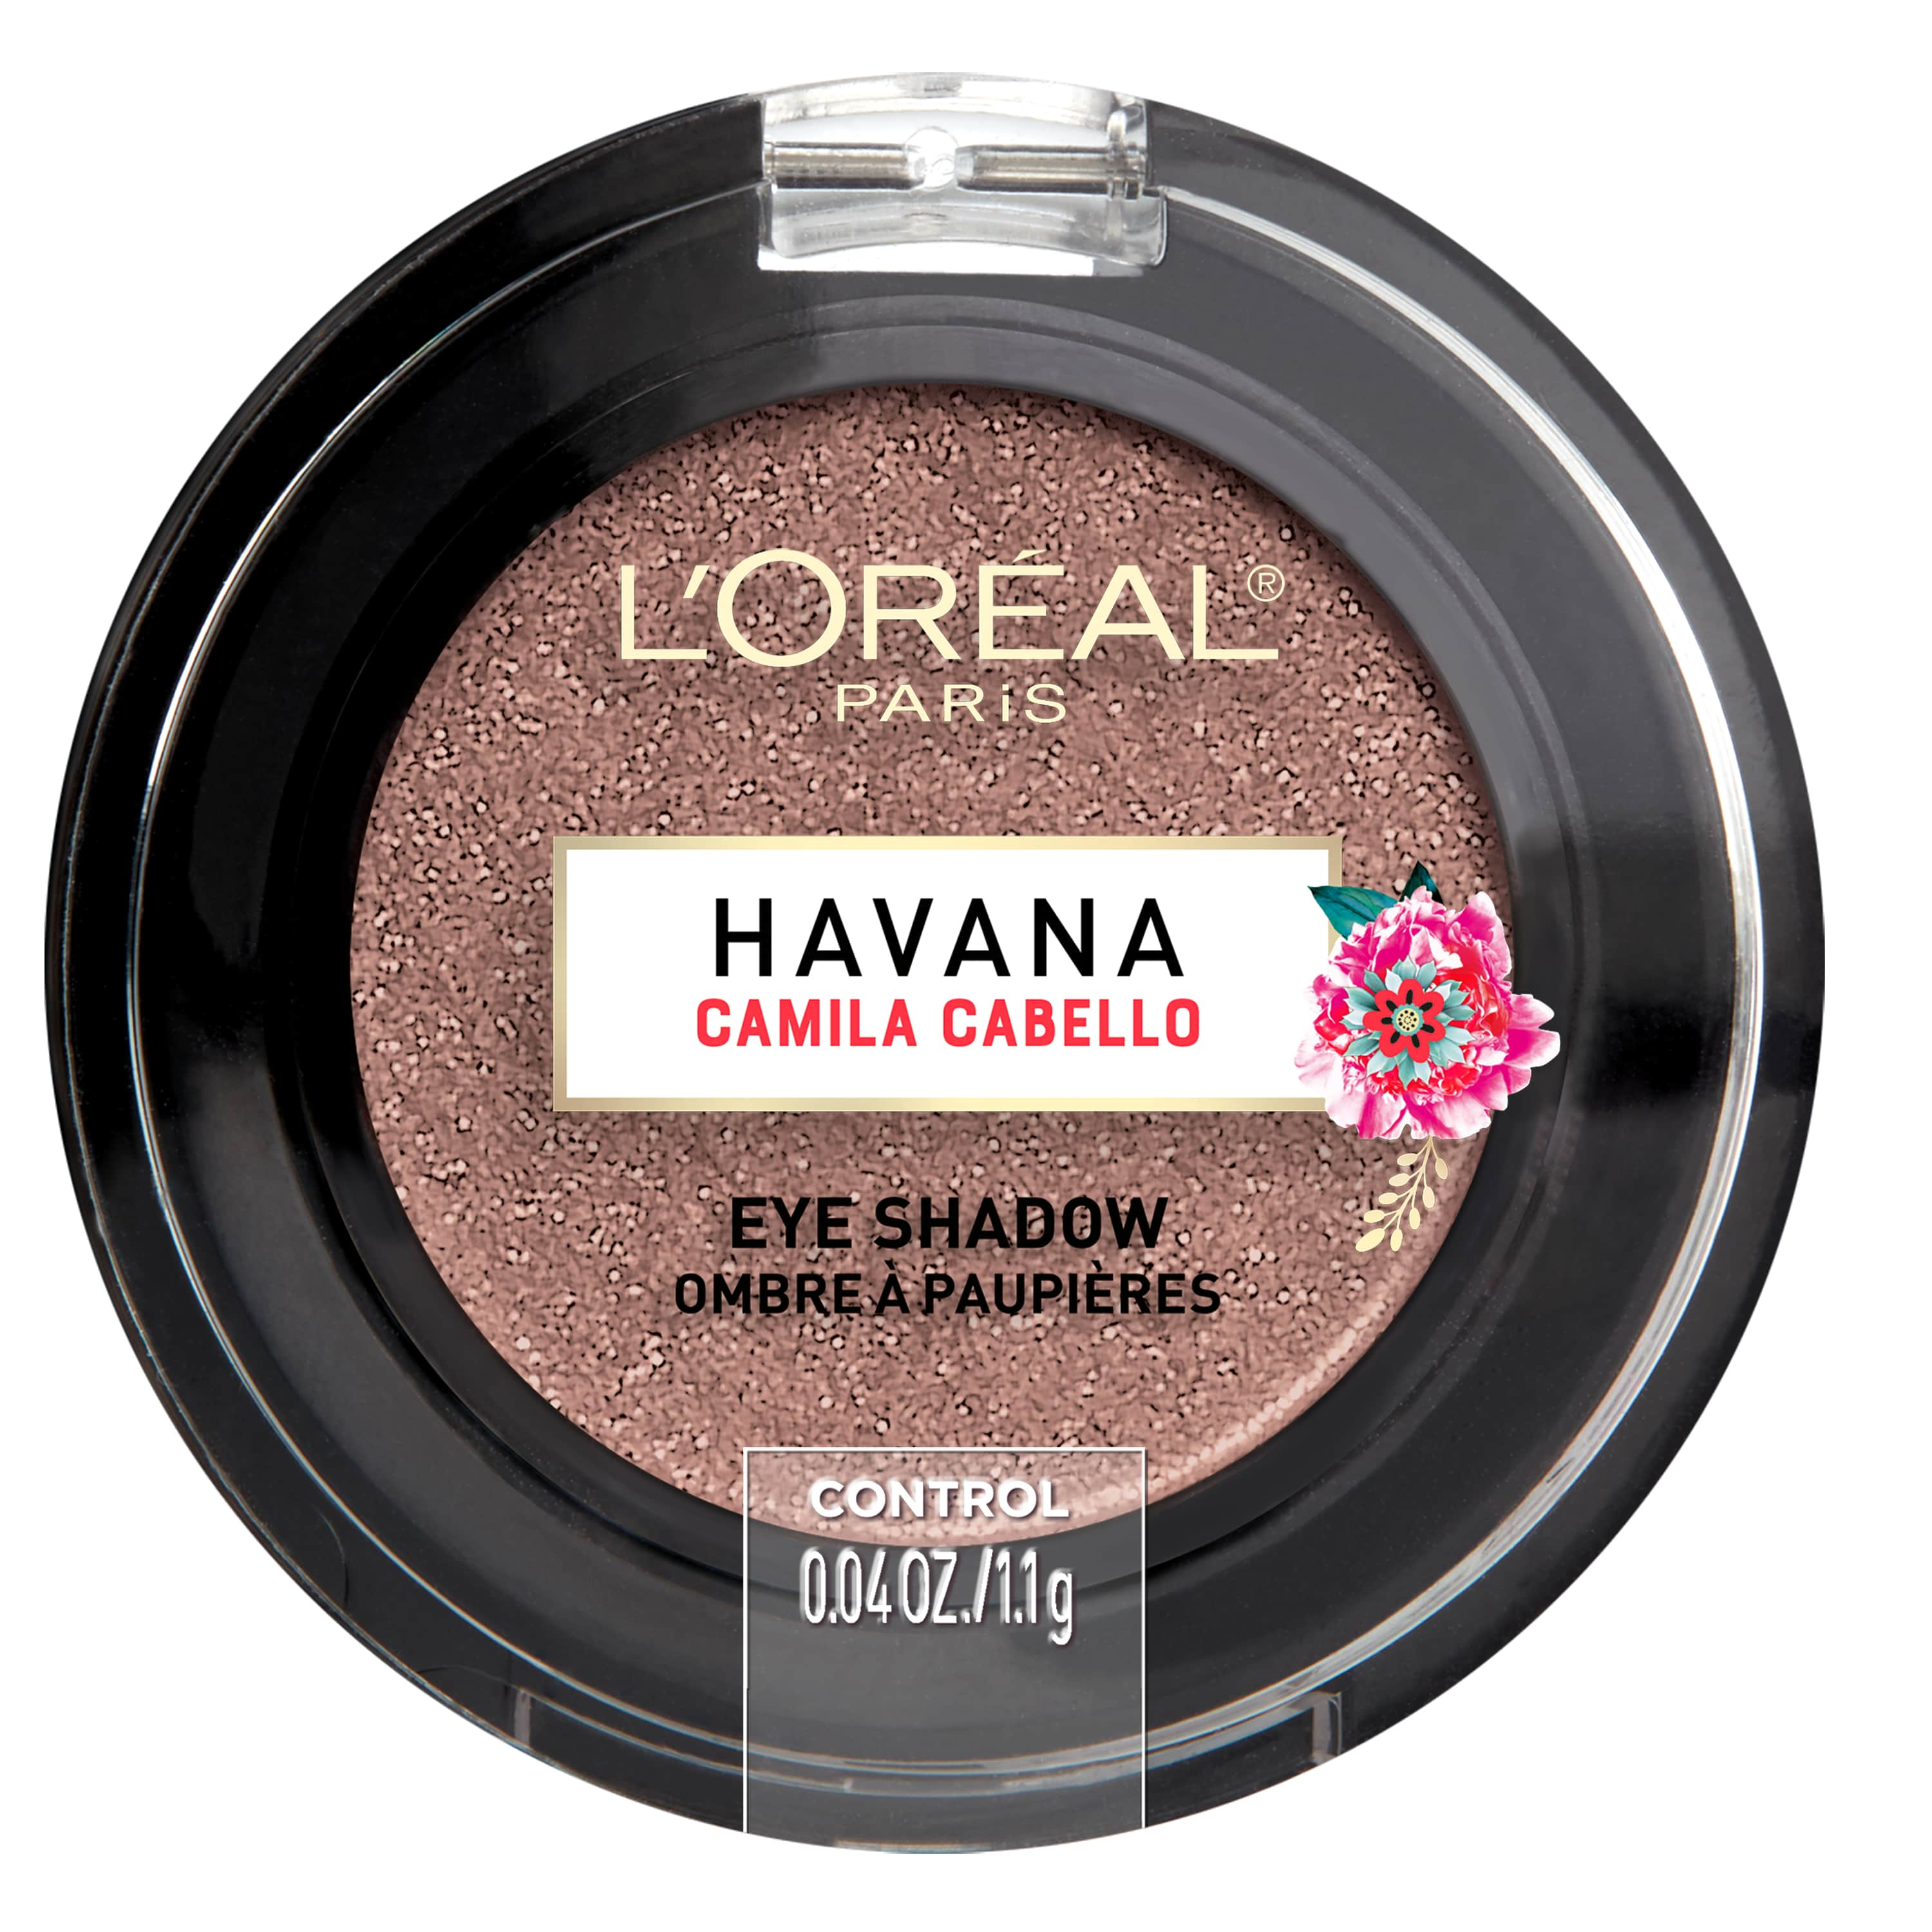 Havana Camila Cabello Eye Shadow